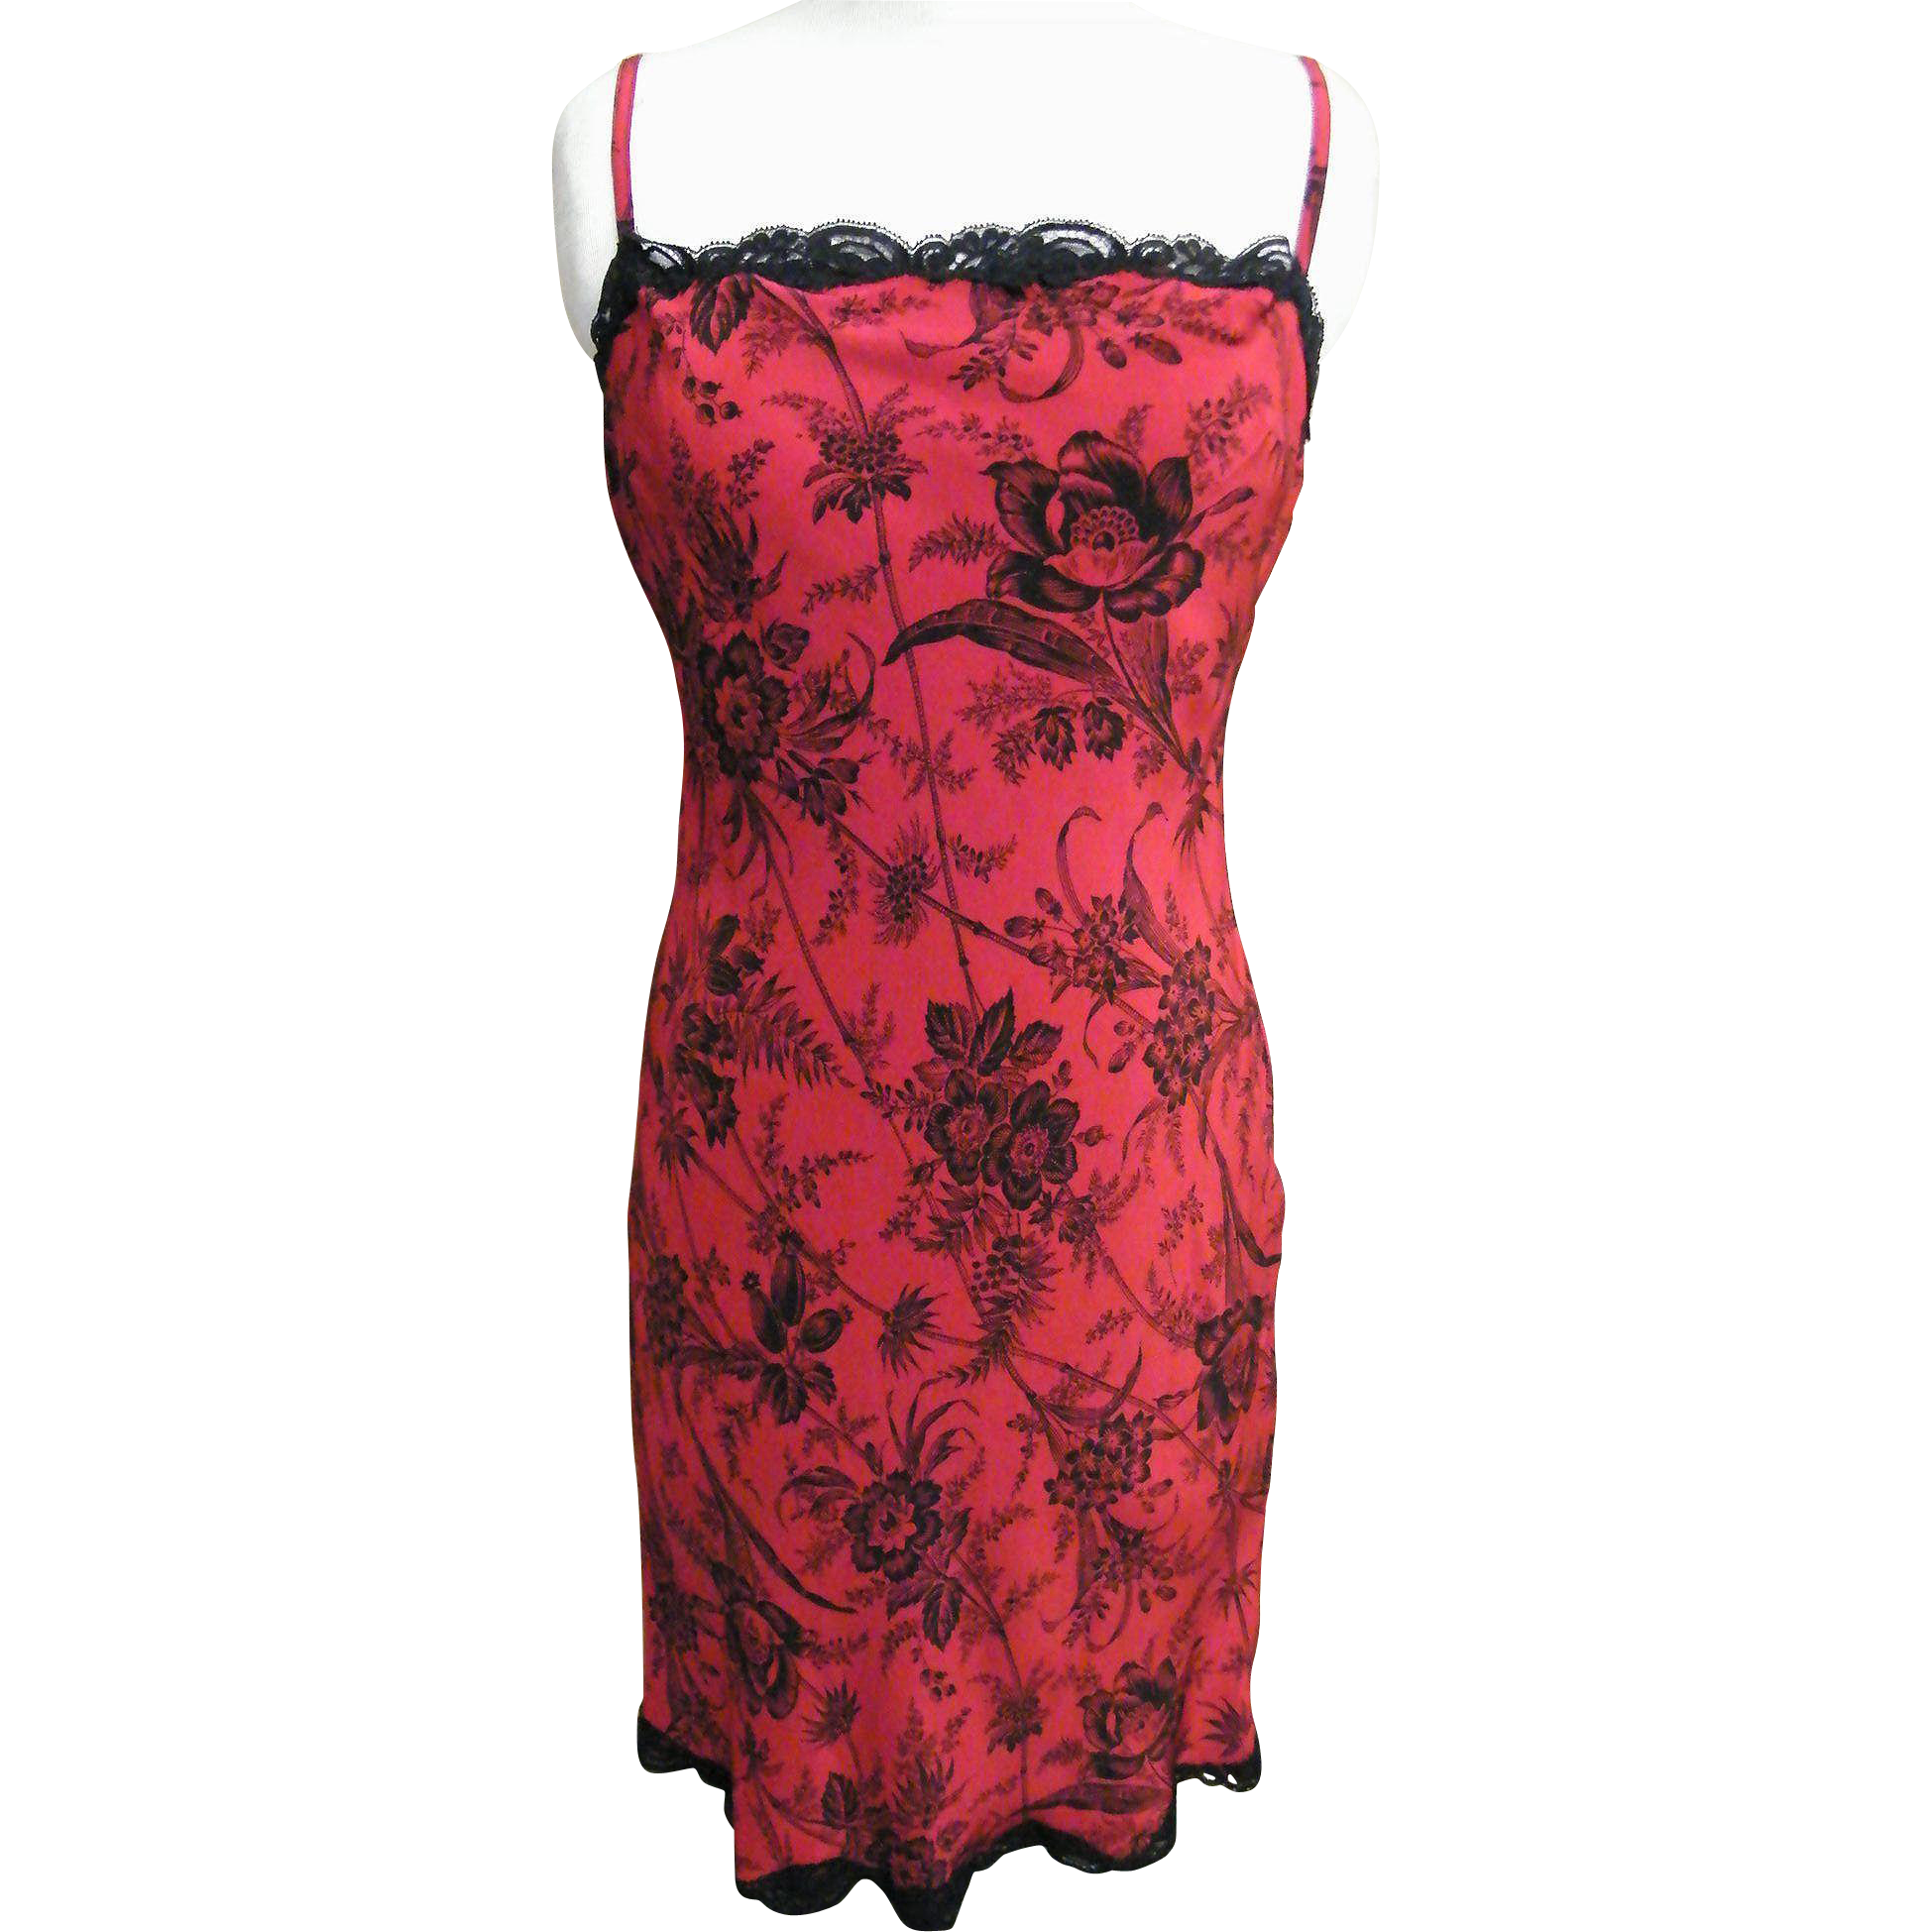 Red Rayon Slip Or Dress With Black Floral Spray Print..Black Lace Trim..Excellent Condition